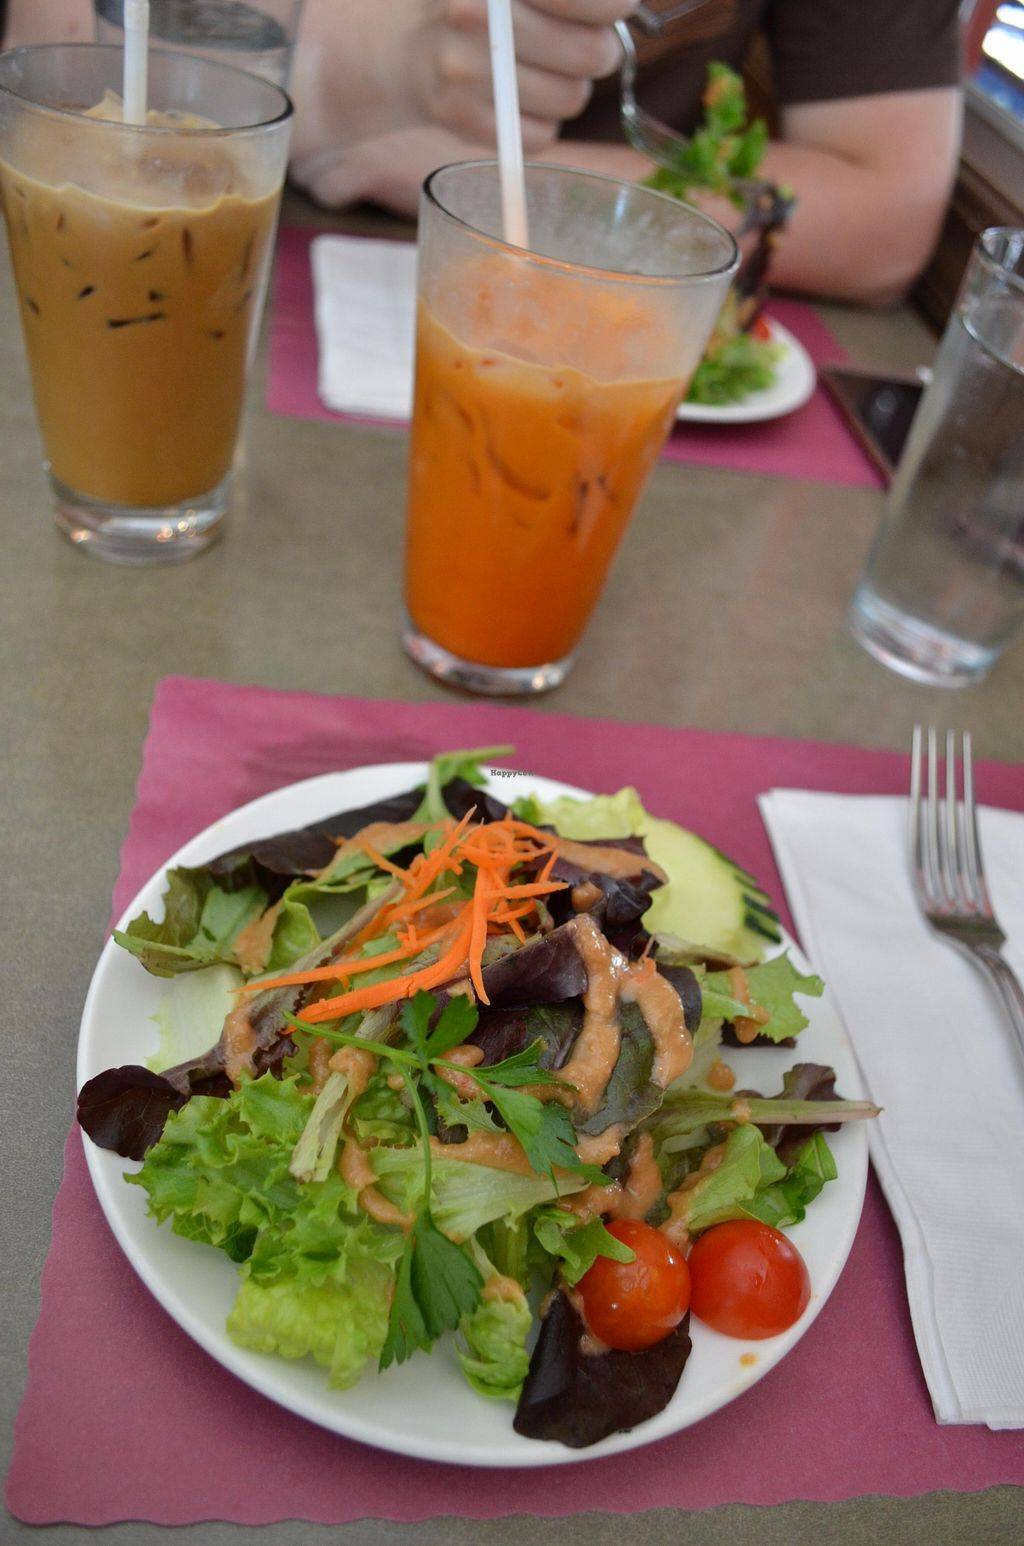 """Photo of Thai Basil Restaurant  by <a href=""""/members/profile/alexandra_vegan"""">alexandra_vegan</a> <br/>Salad with peanut sauce. Included in the daily menu <br/> May 16, 2016  - <a href='/contact/abuse/image/67778/149317'>Report</a>"""